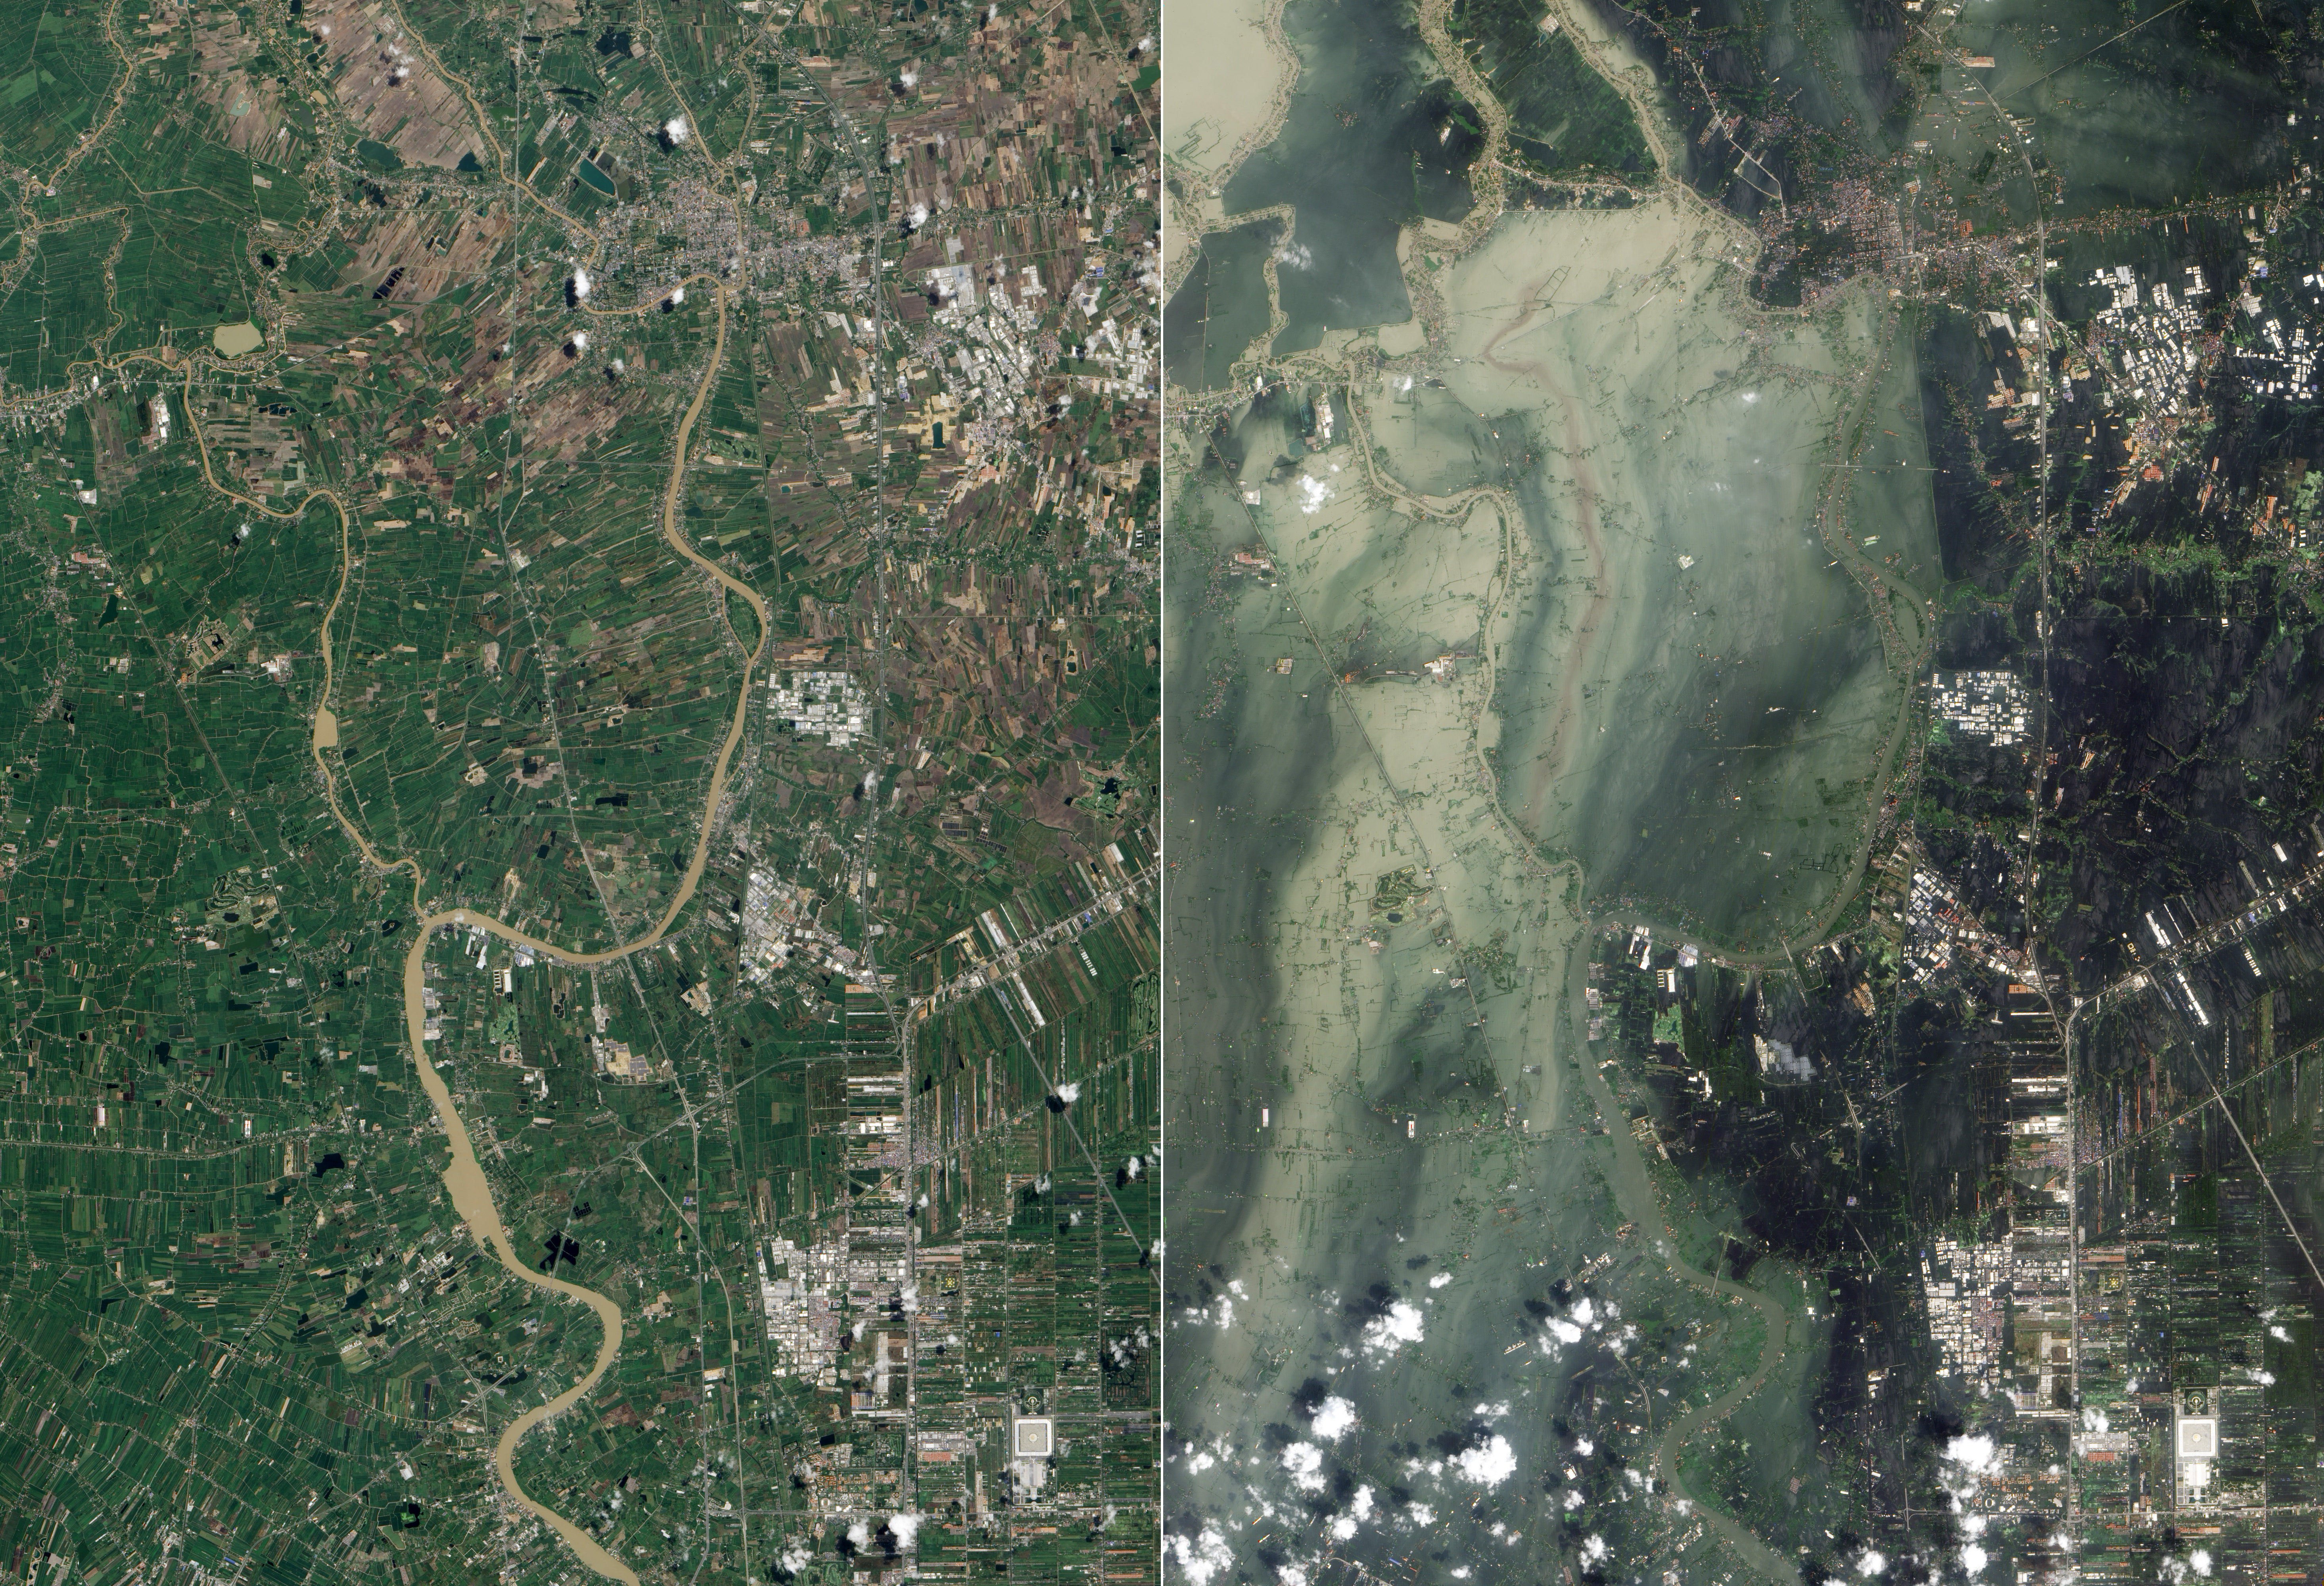 Flooding In Ayutthaya And Pathum Thani Provinces In October Right Compared To Before The Flooding In July Left